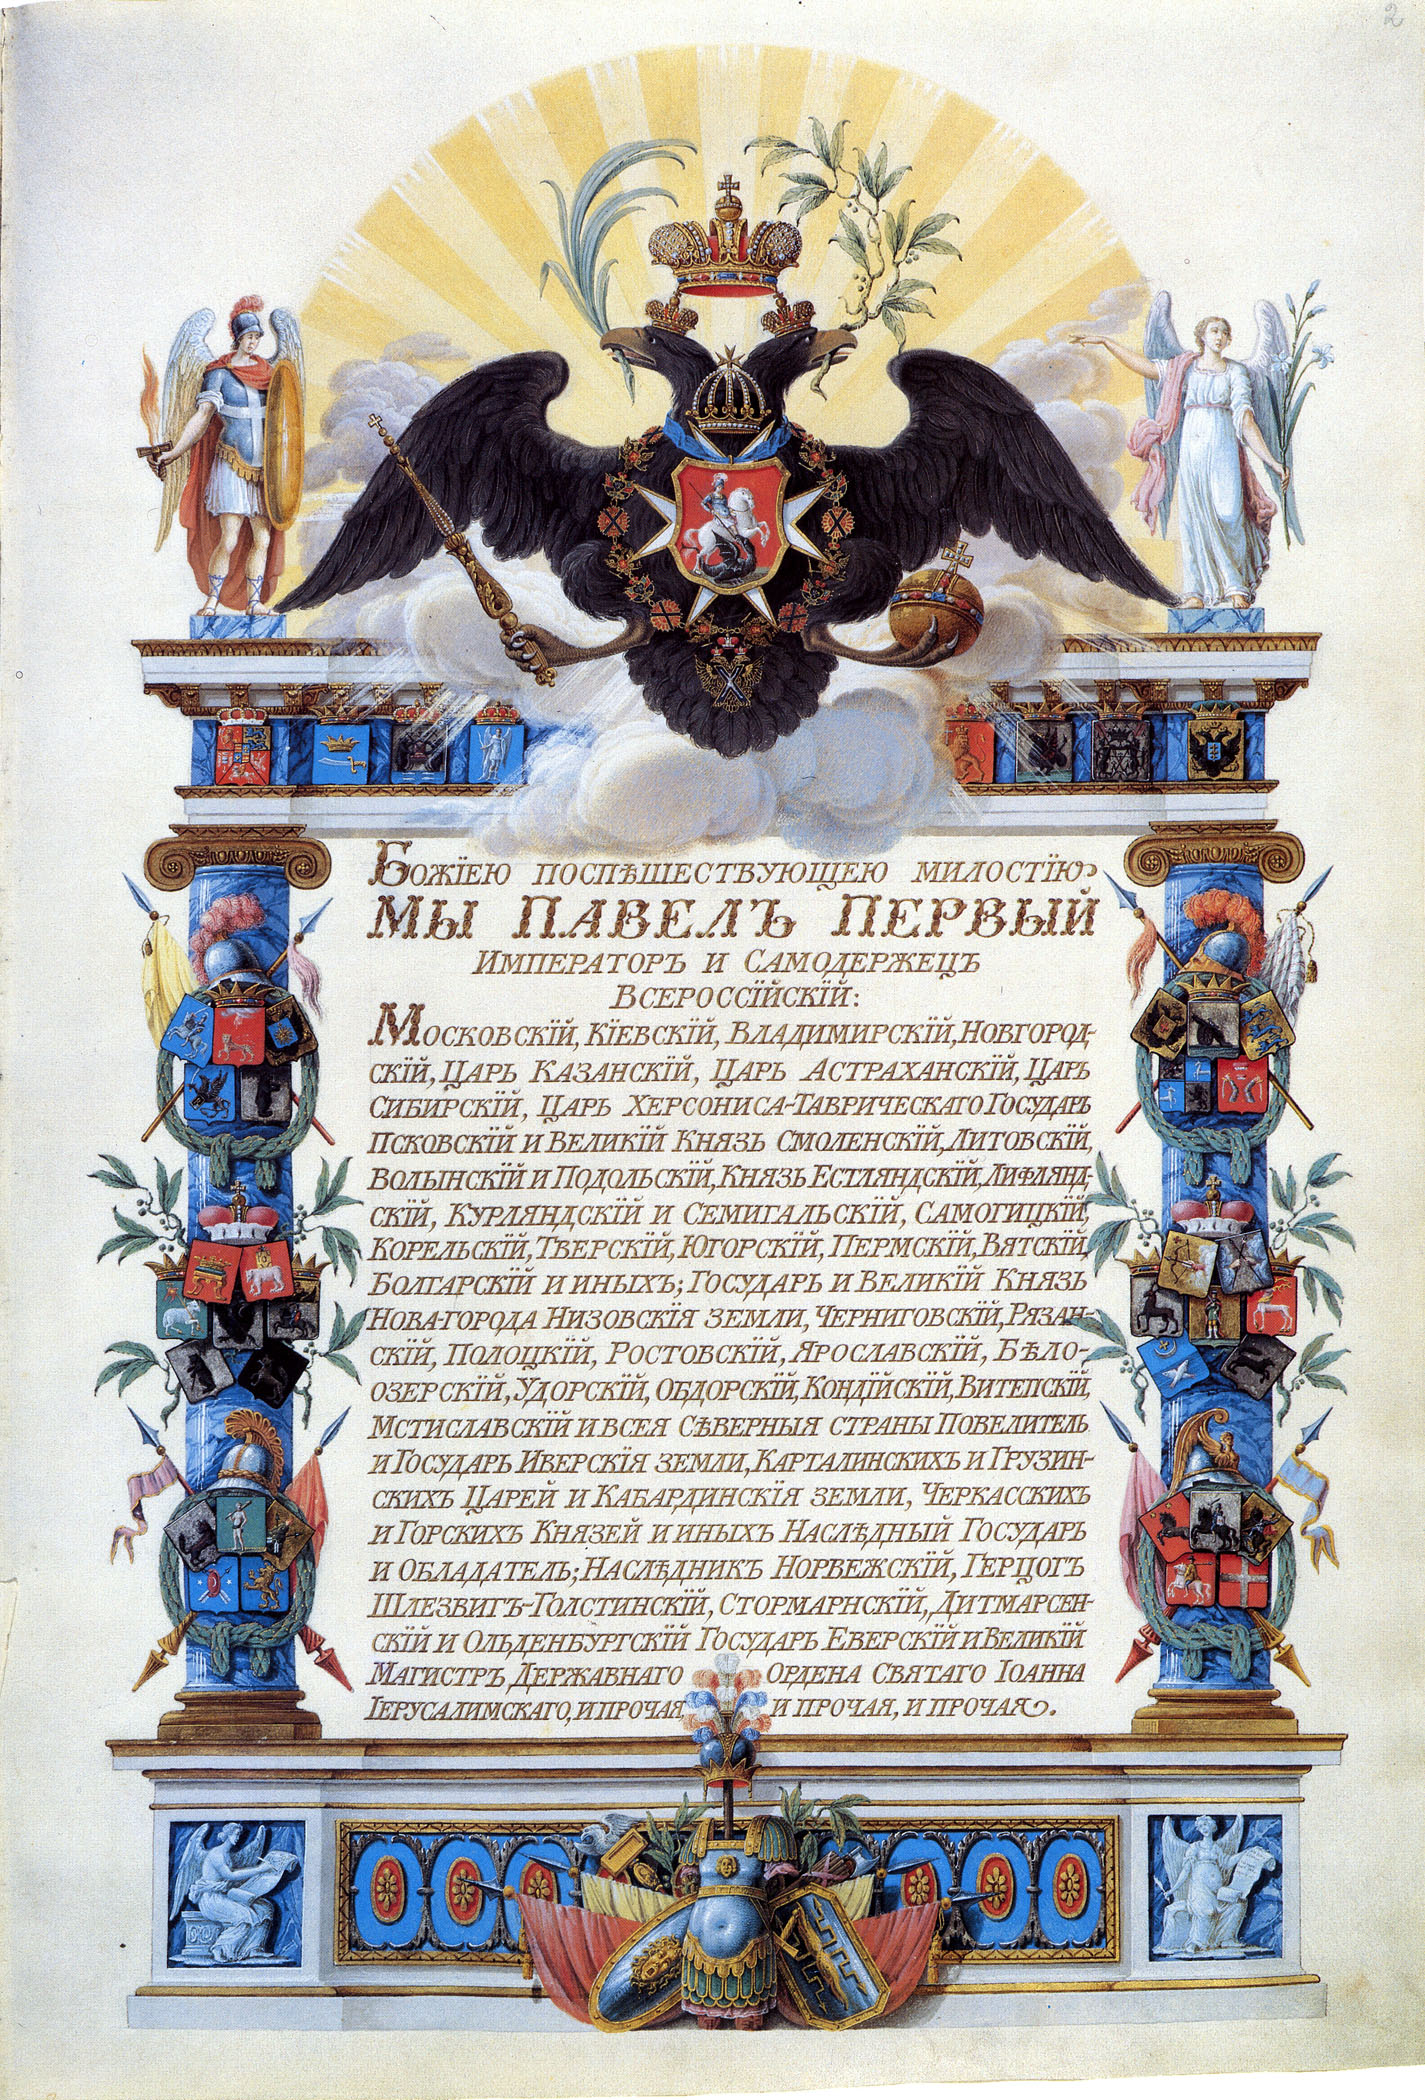 http://the.heraldry.ru/images/002.jpg